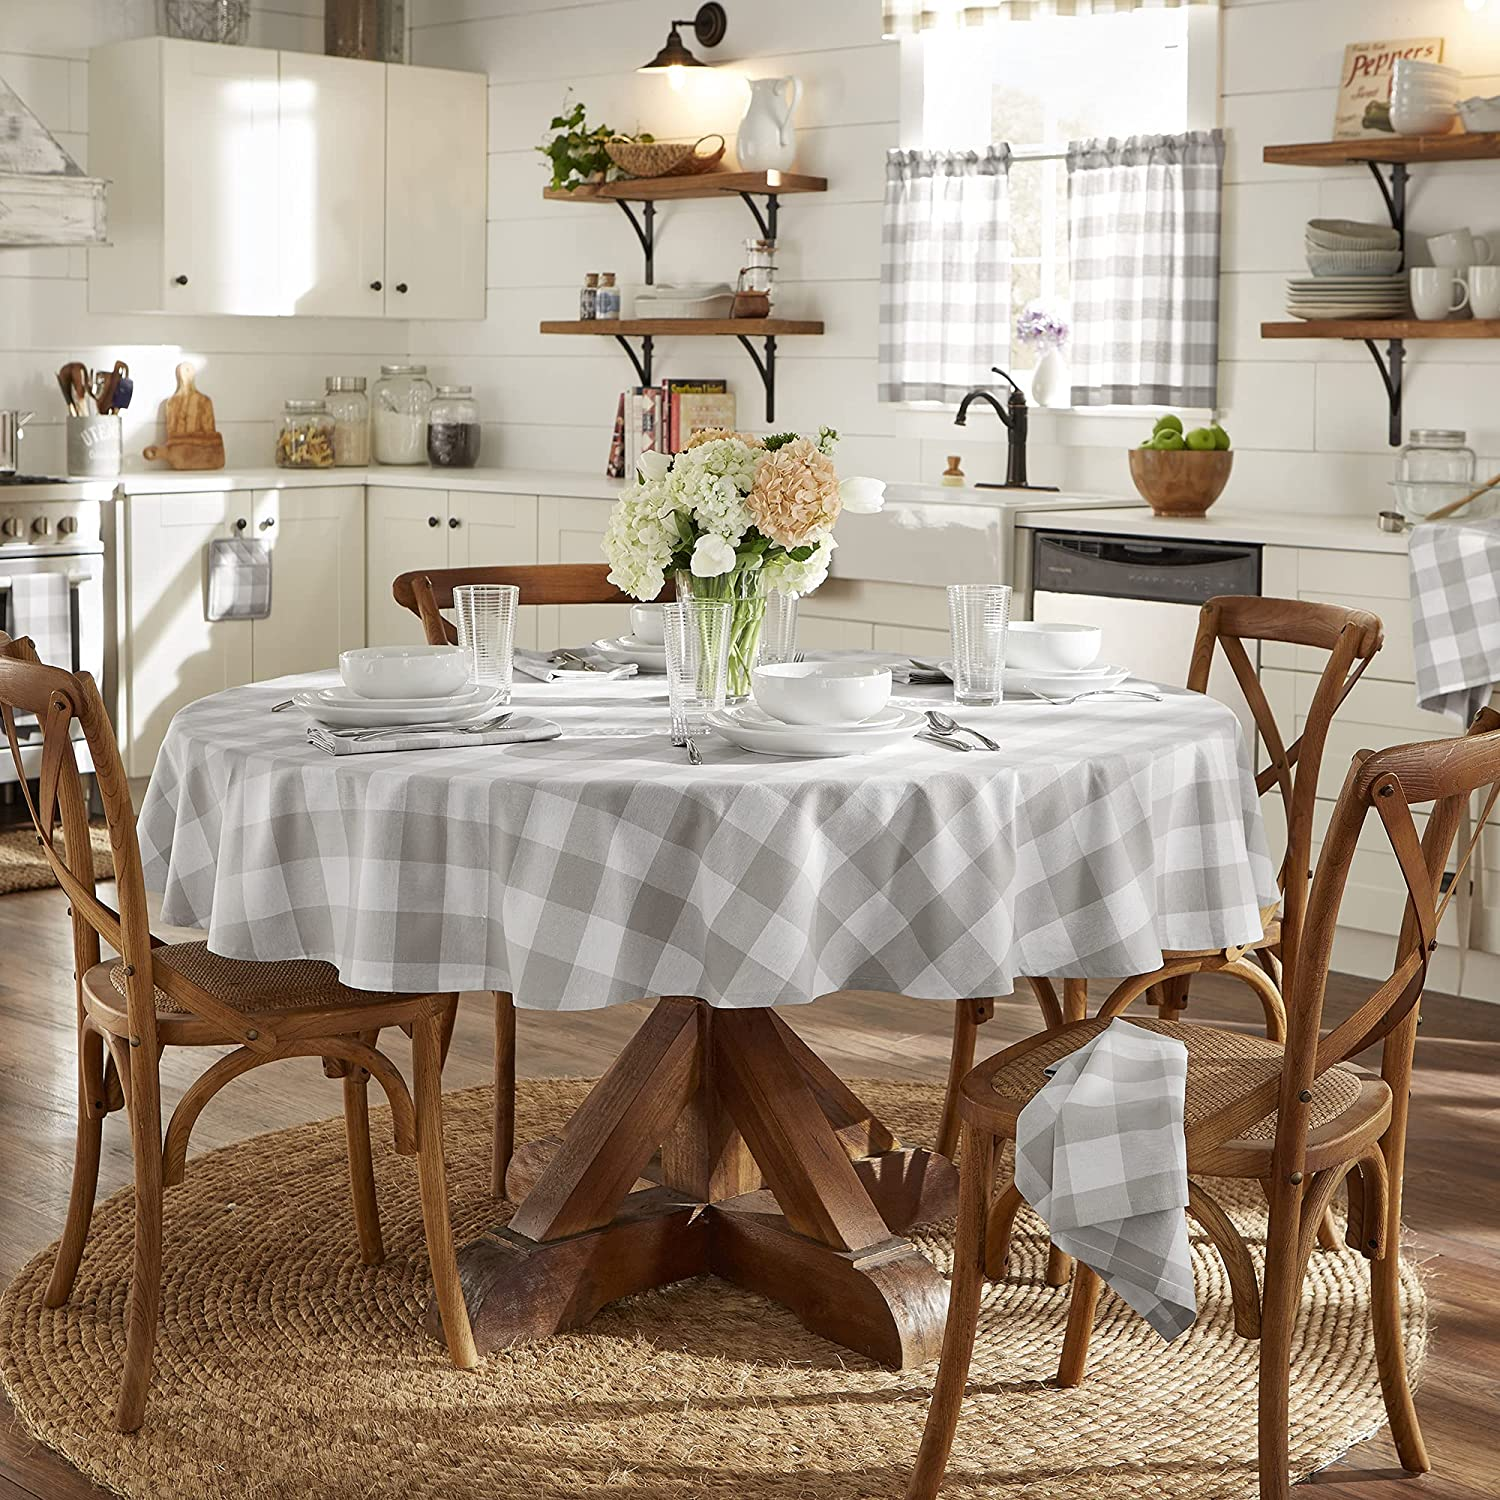 Elrene Home Now free shipping Fashions Farmhouse Buffalo Check Living Tablecloth Popular products